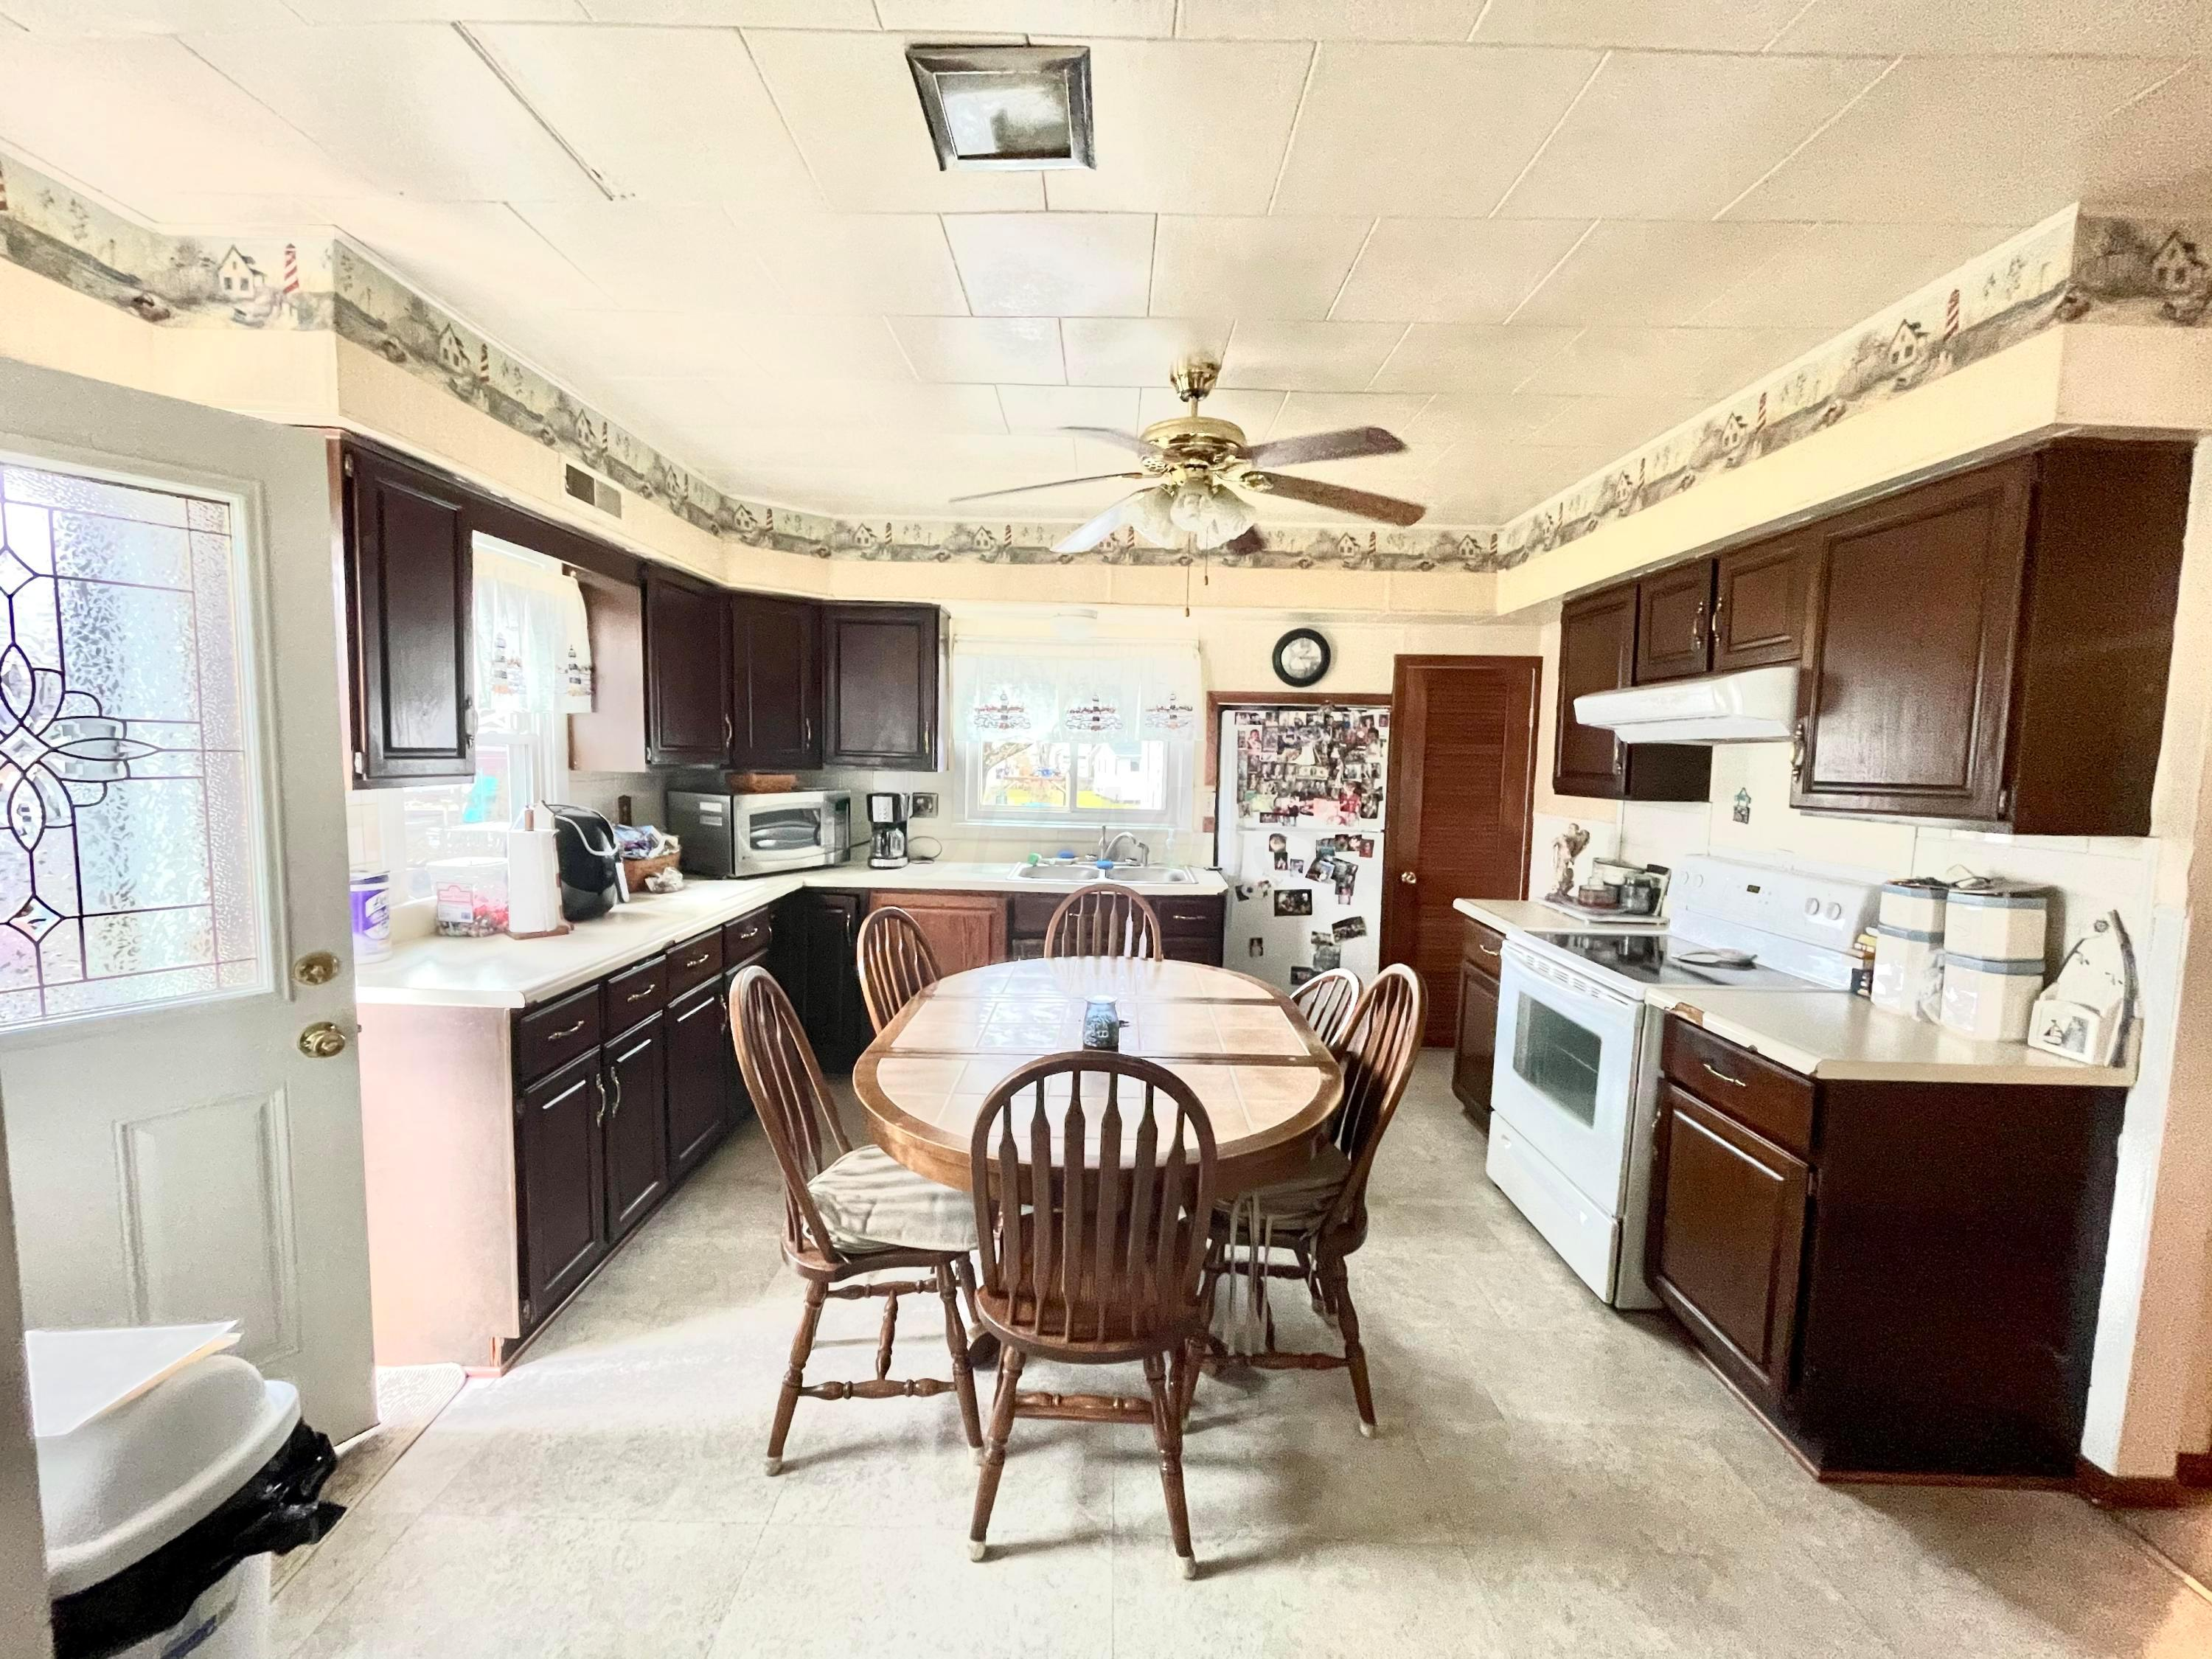 15273 Township Road 493, Thornville, Ohio 43076, 2 Bedrooms Bedrooms, ,2 BathroomsBathrooms,Residential,For Sale,Township Road 493,221000515